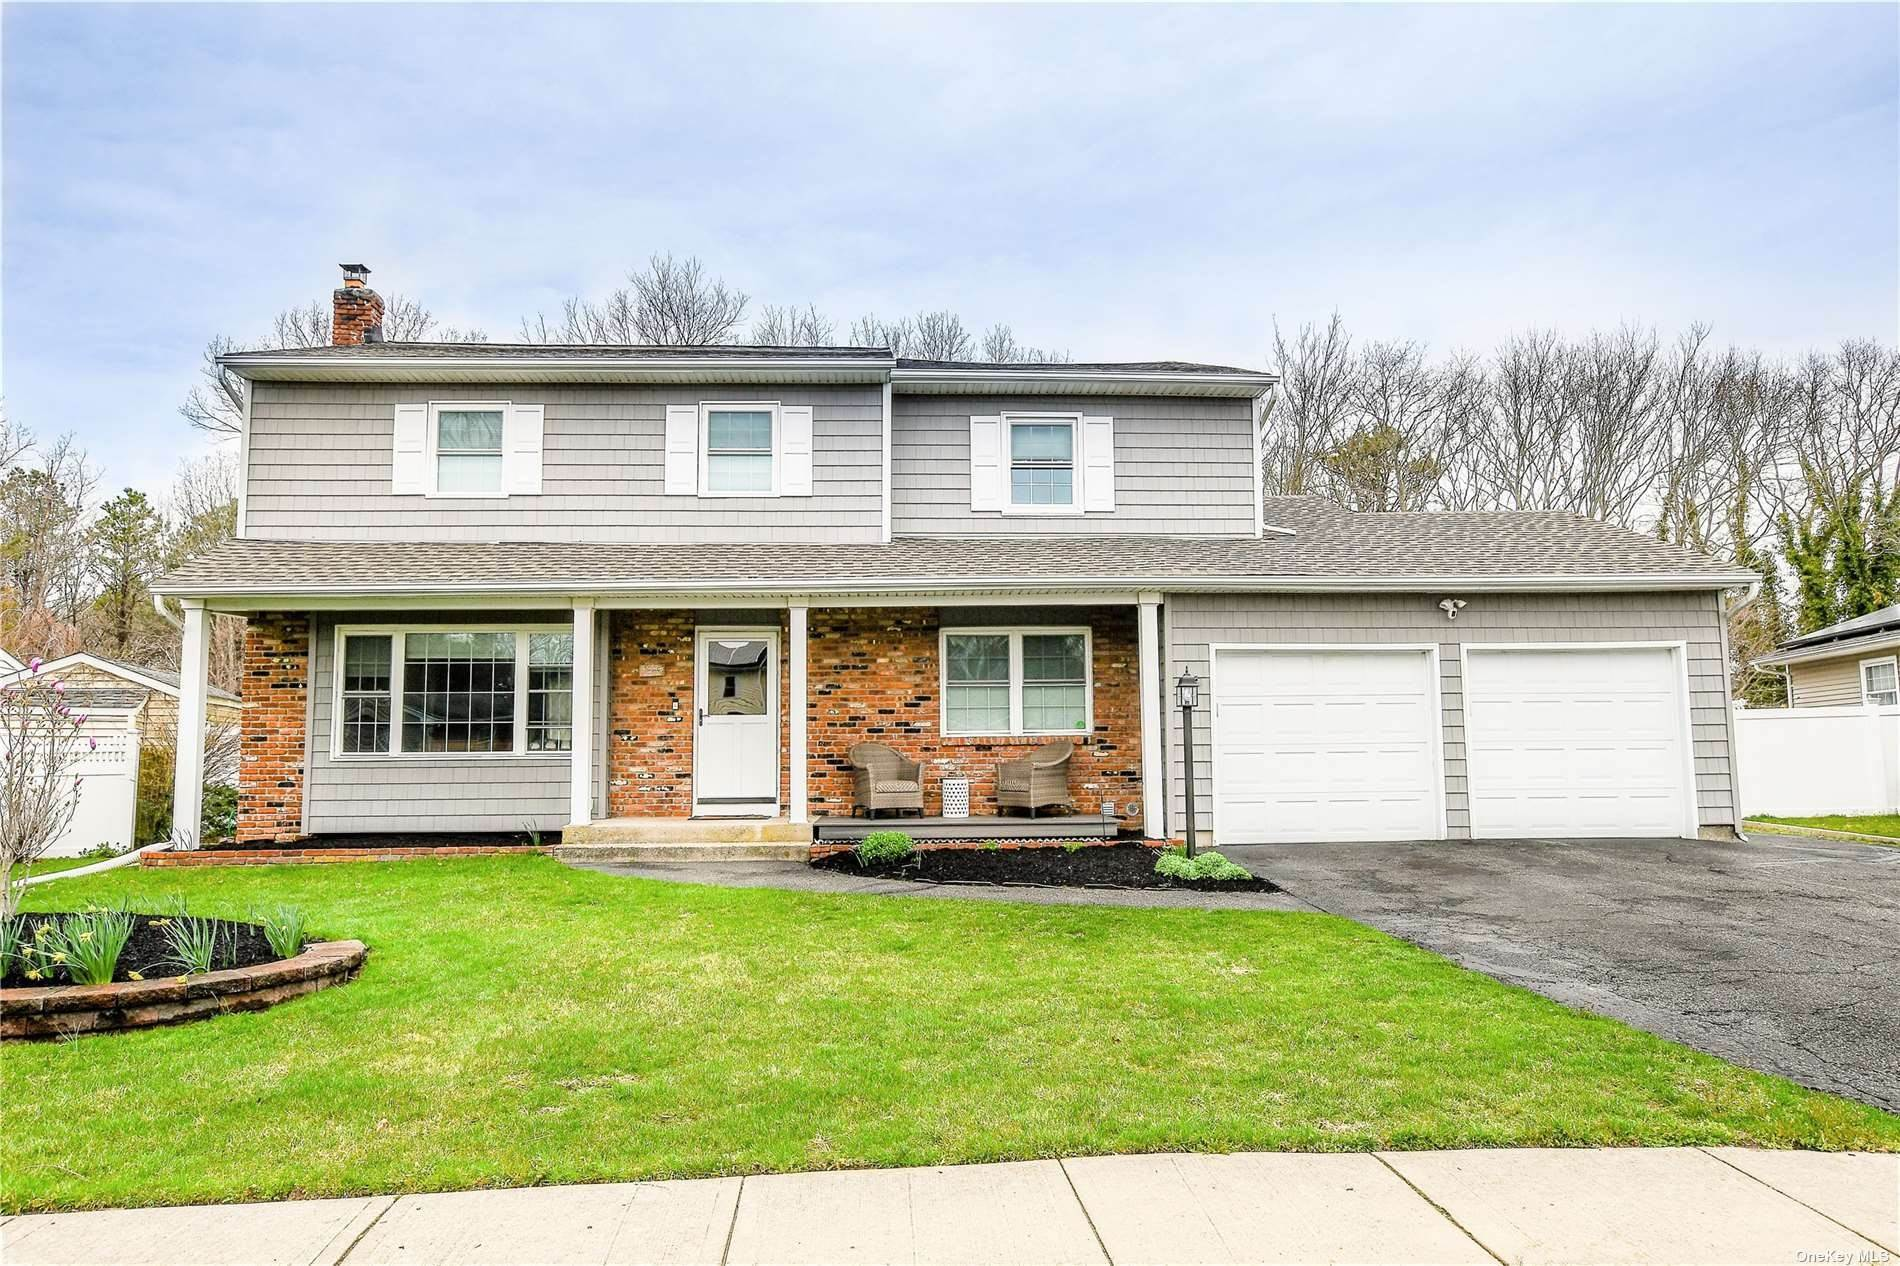 Residential for Sale at 310 Singingwood Drive Holbrook, New York 11741 United States